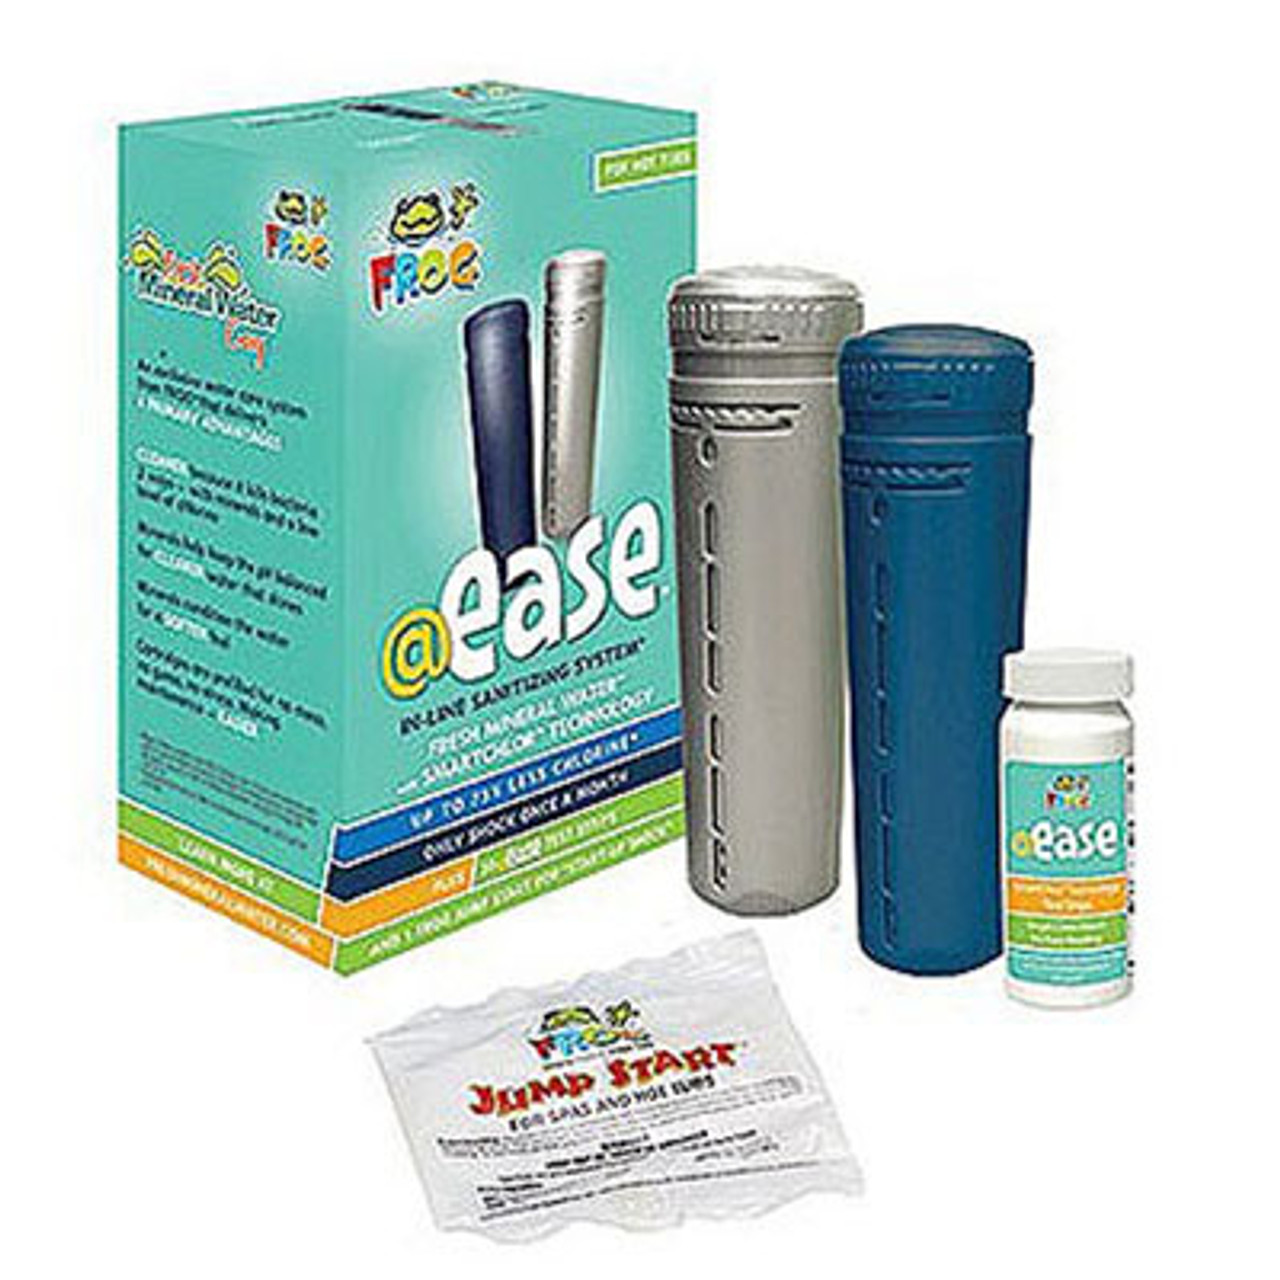 Ease In Line Sanitizing System Kit Lowest Price